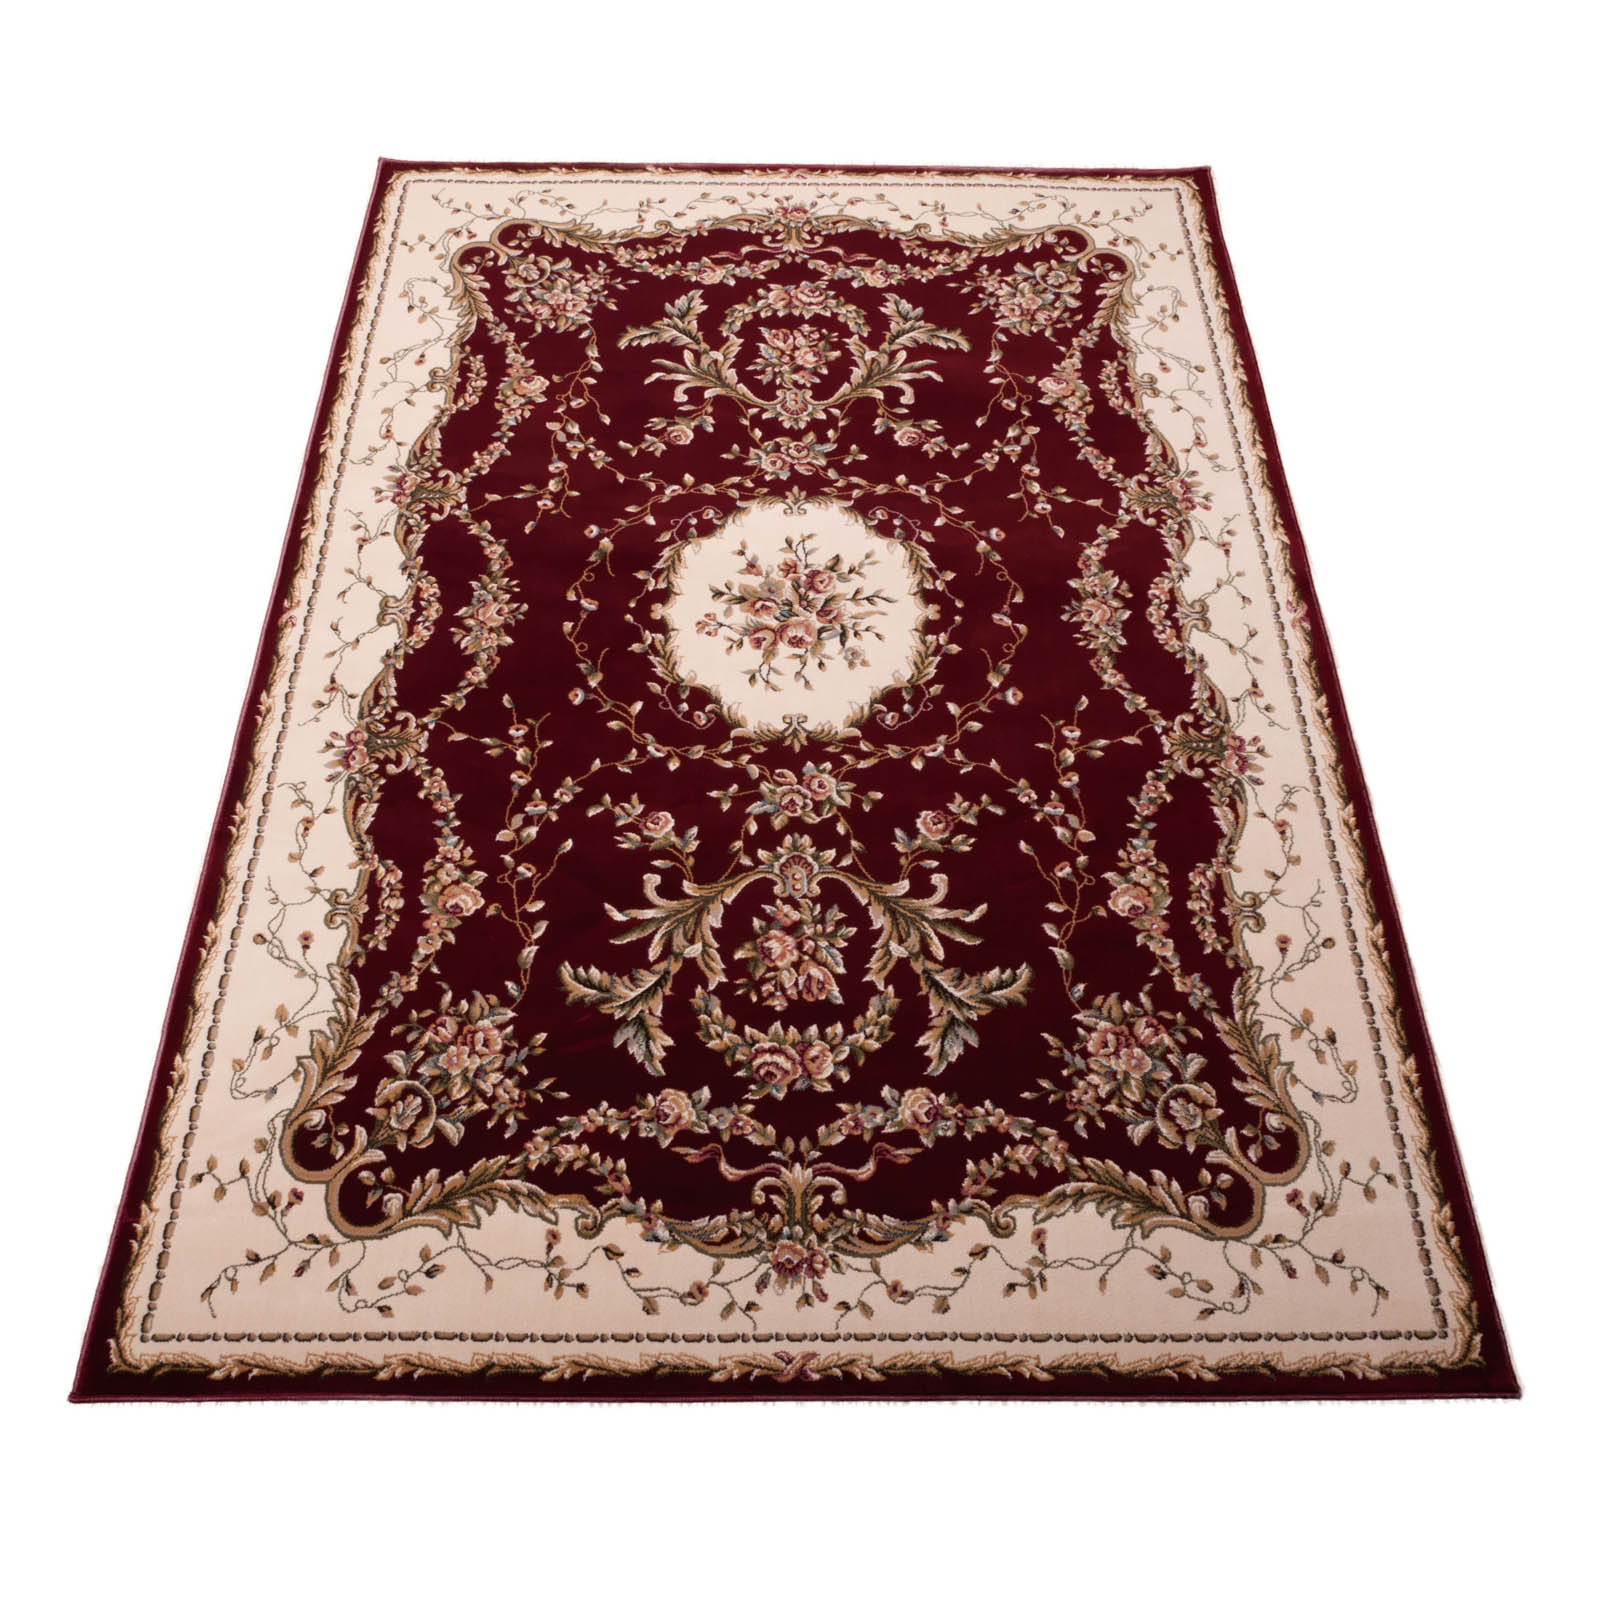 Bordeaux Rugs BOR01 in Burgundy